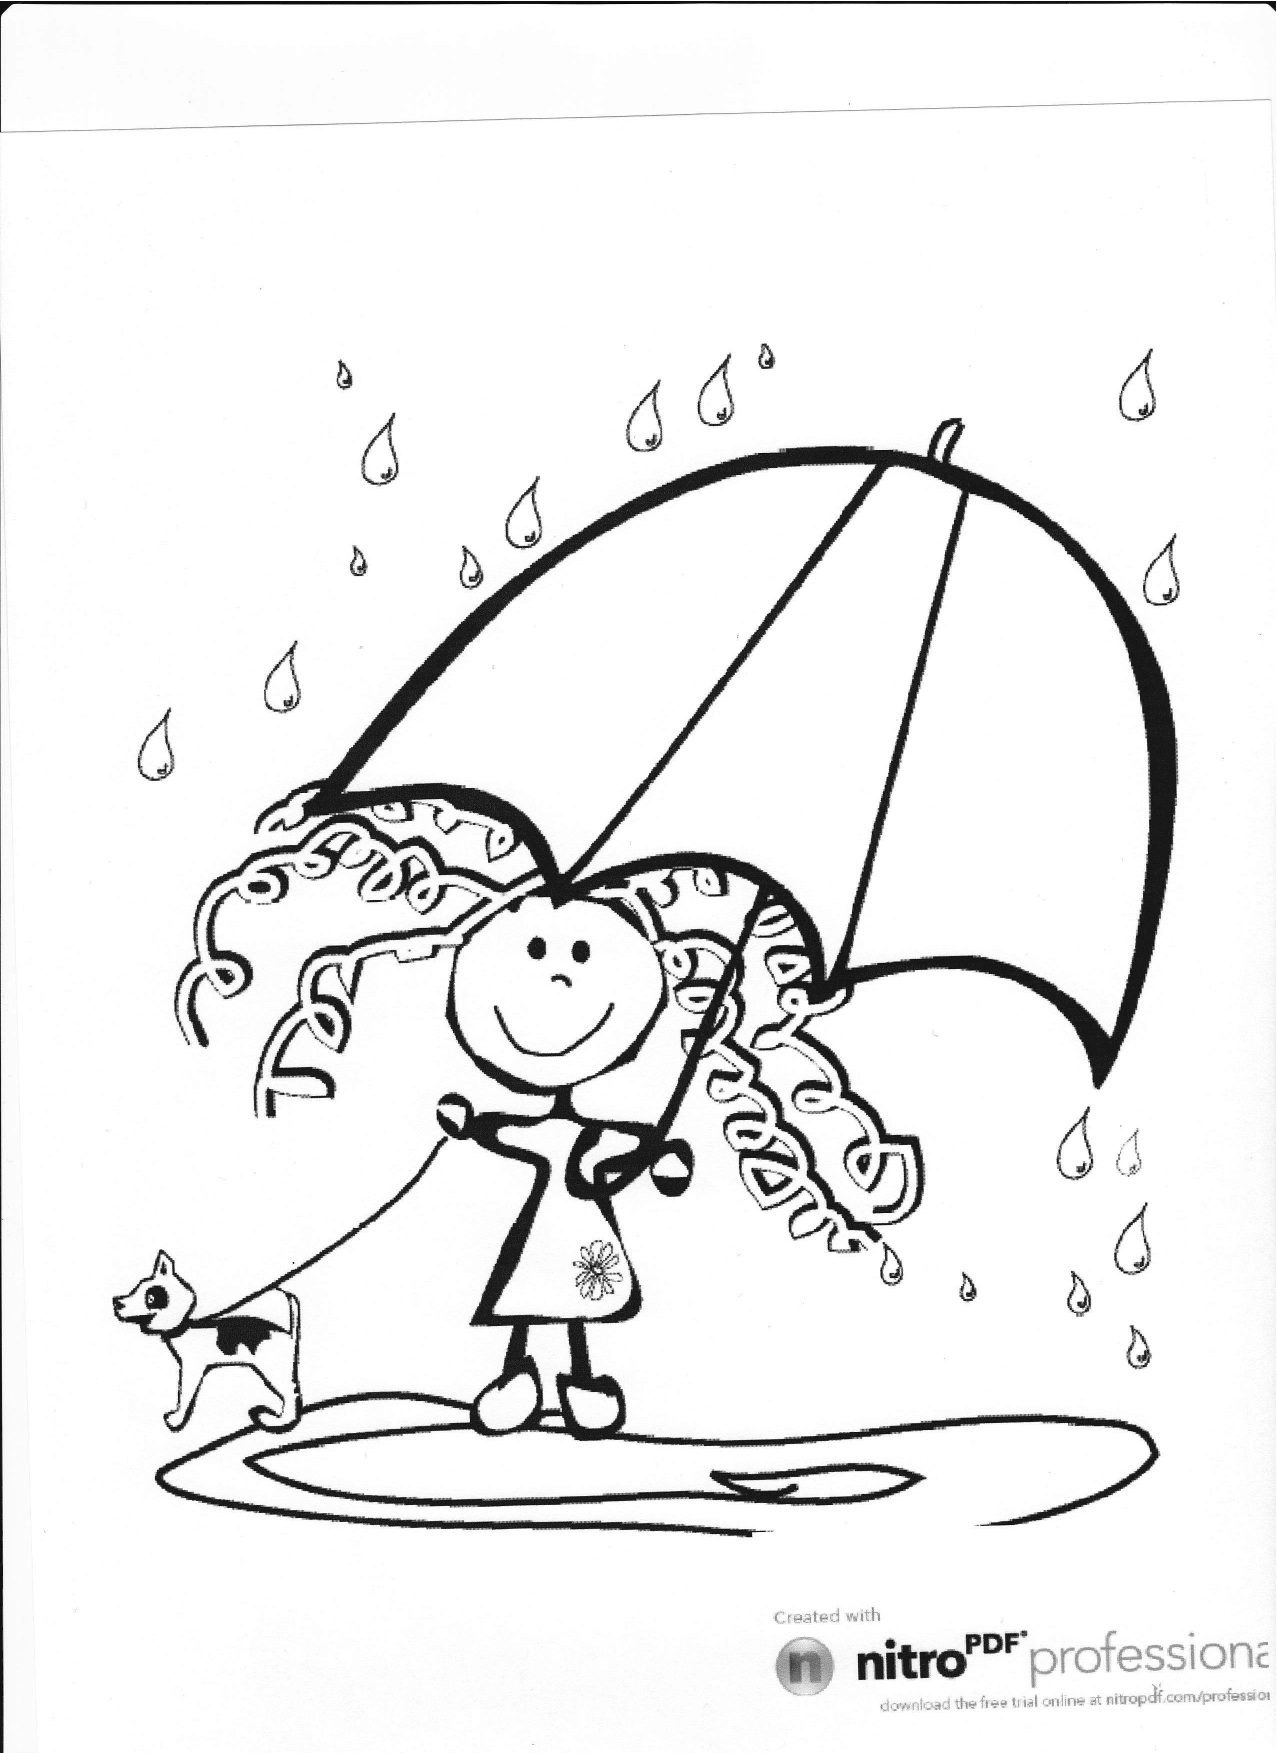 Rainy day coloring pages to download